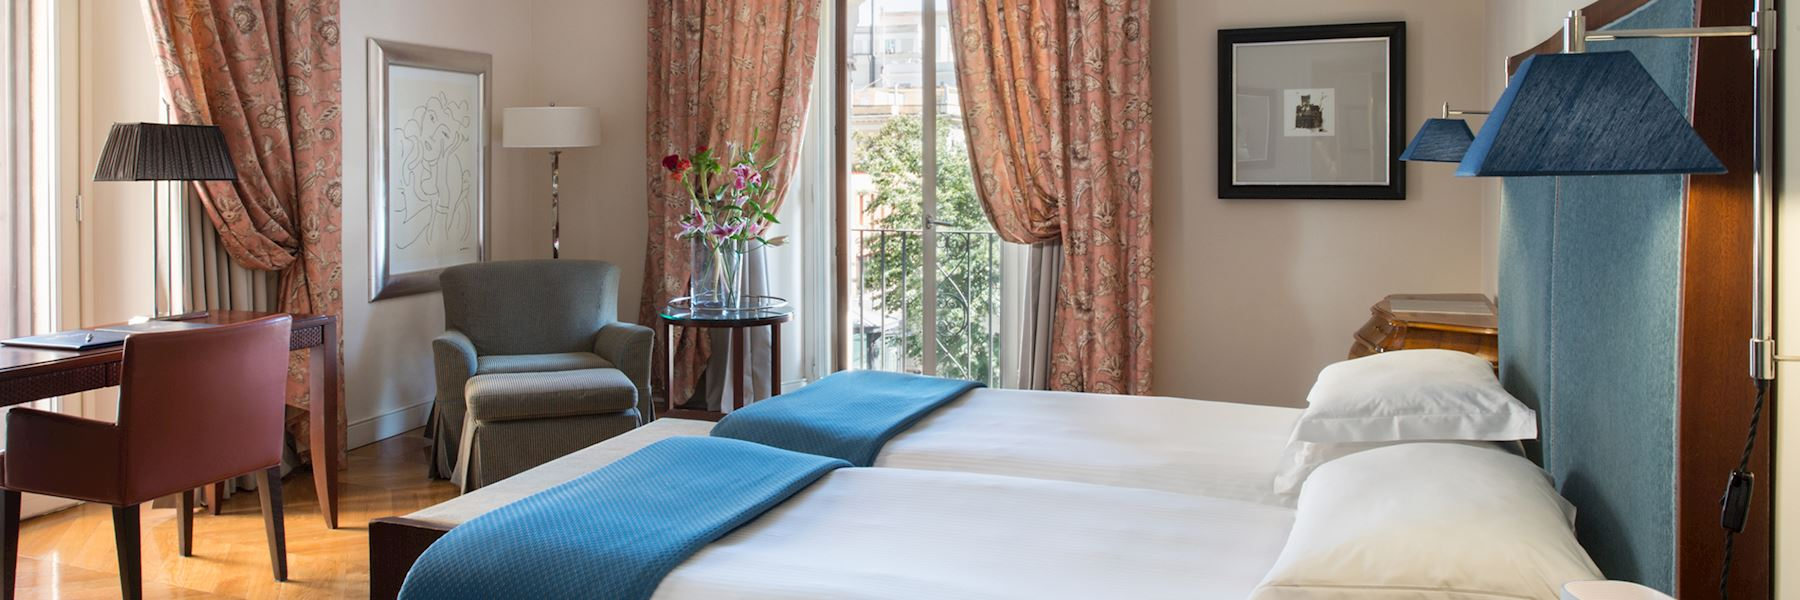 Rose Garden Palace Hotels In Rome Audley Travel